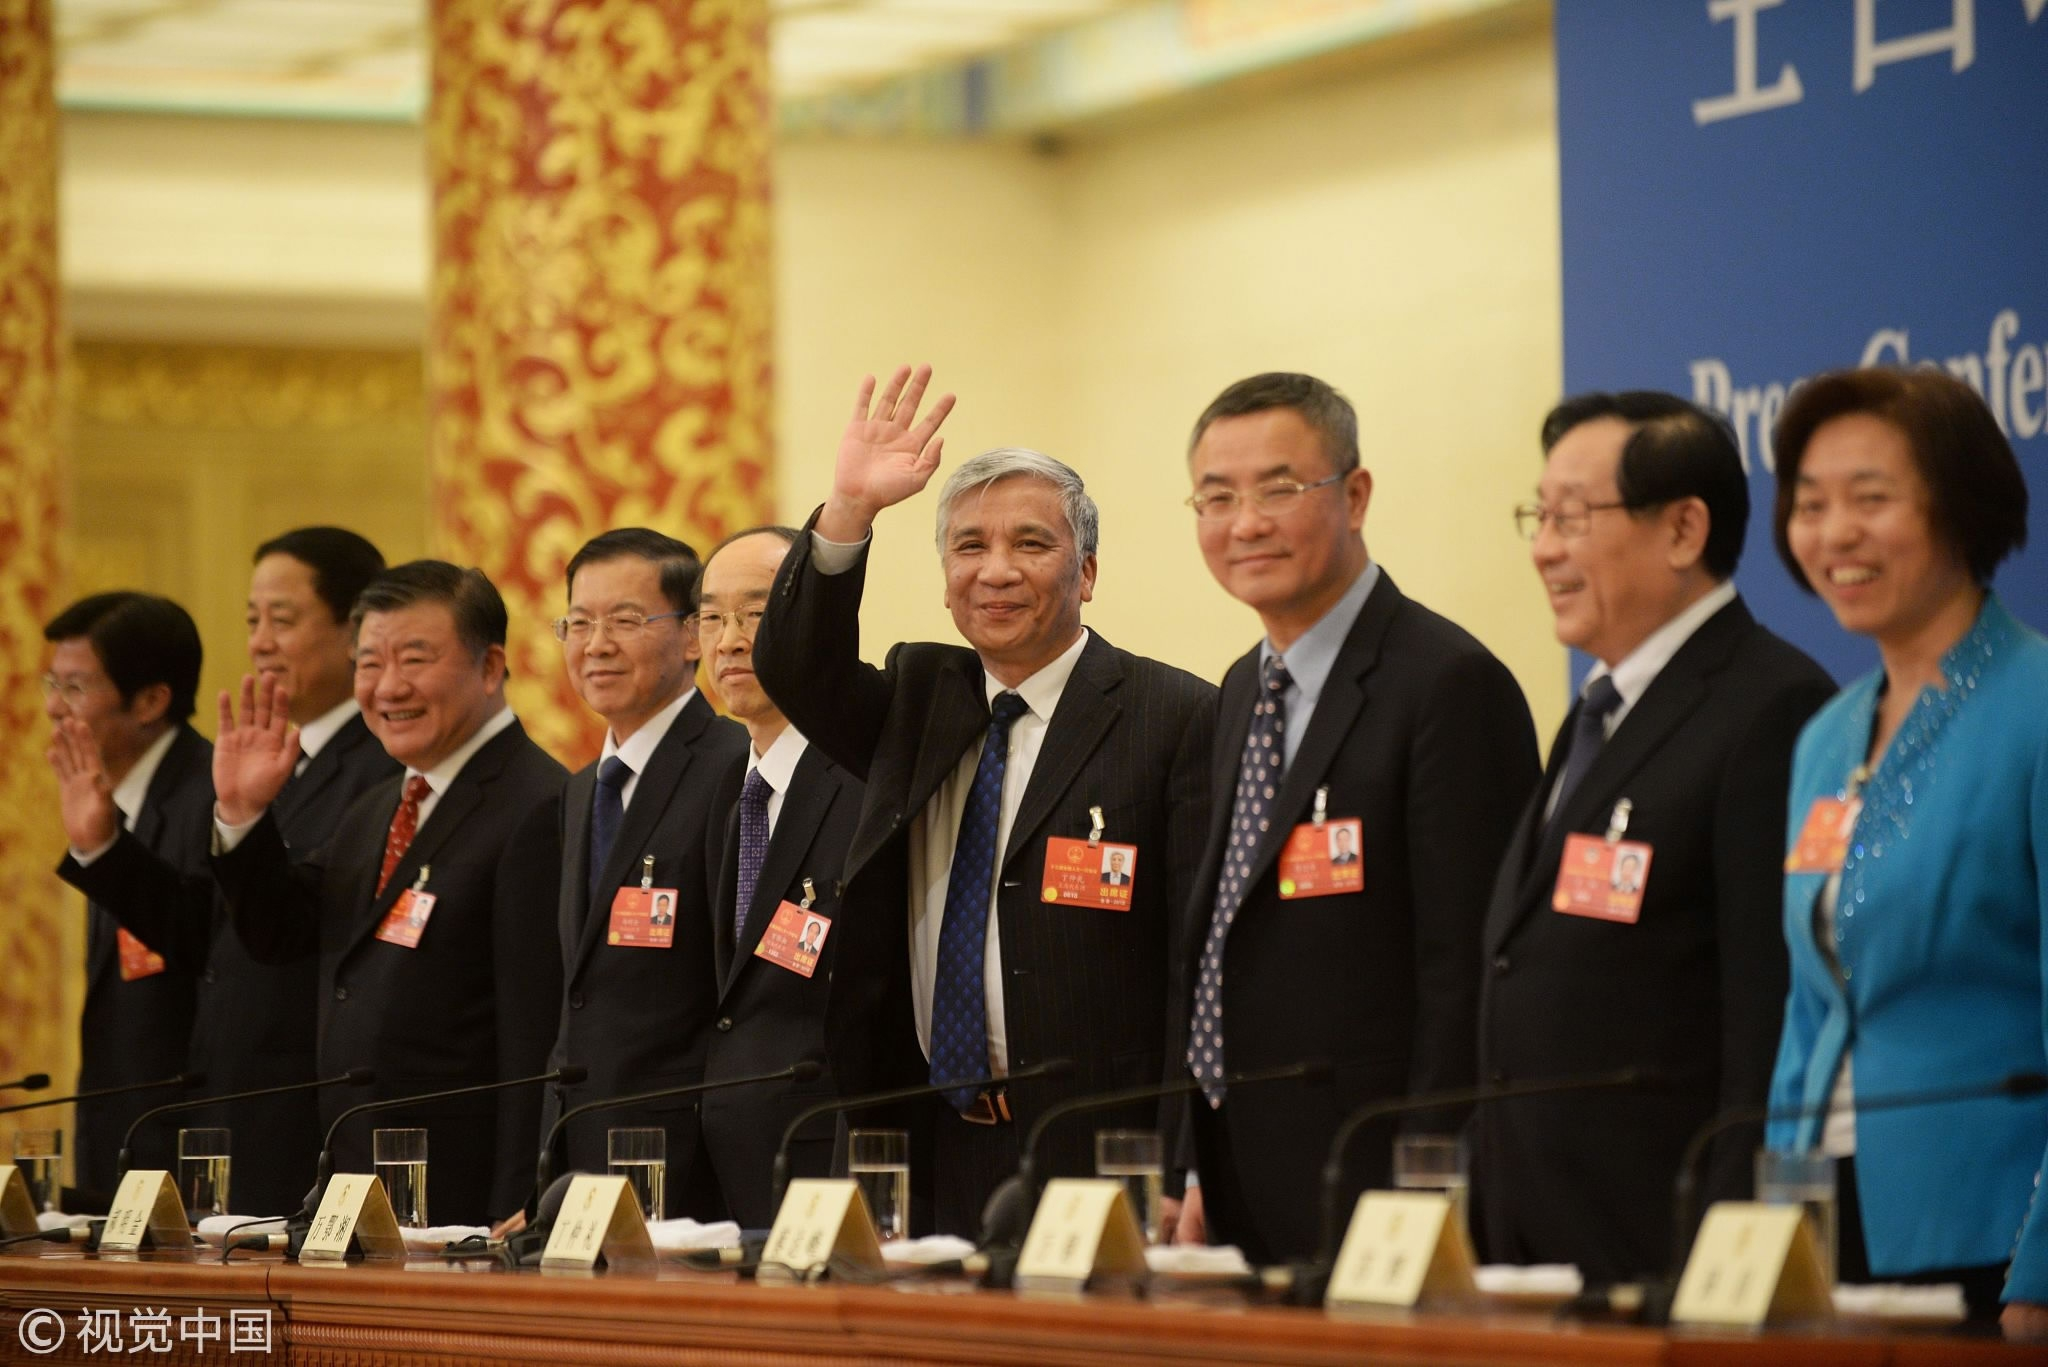 China's Non-Communist parties hold joint press conference